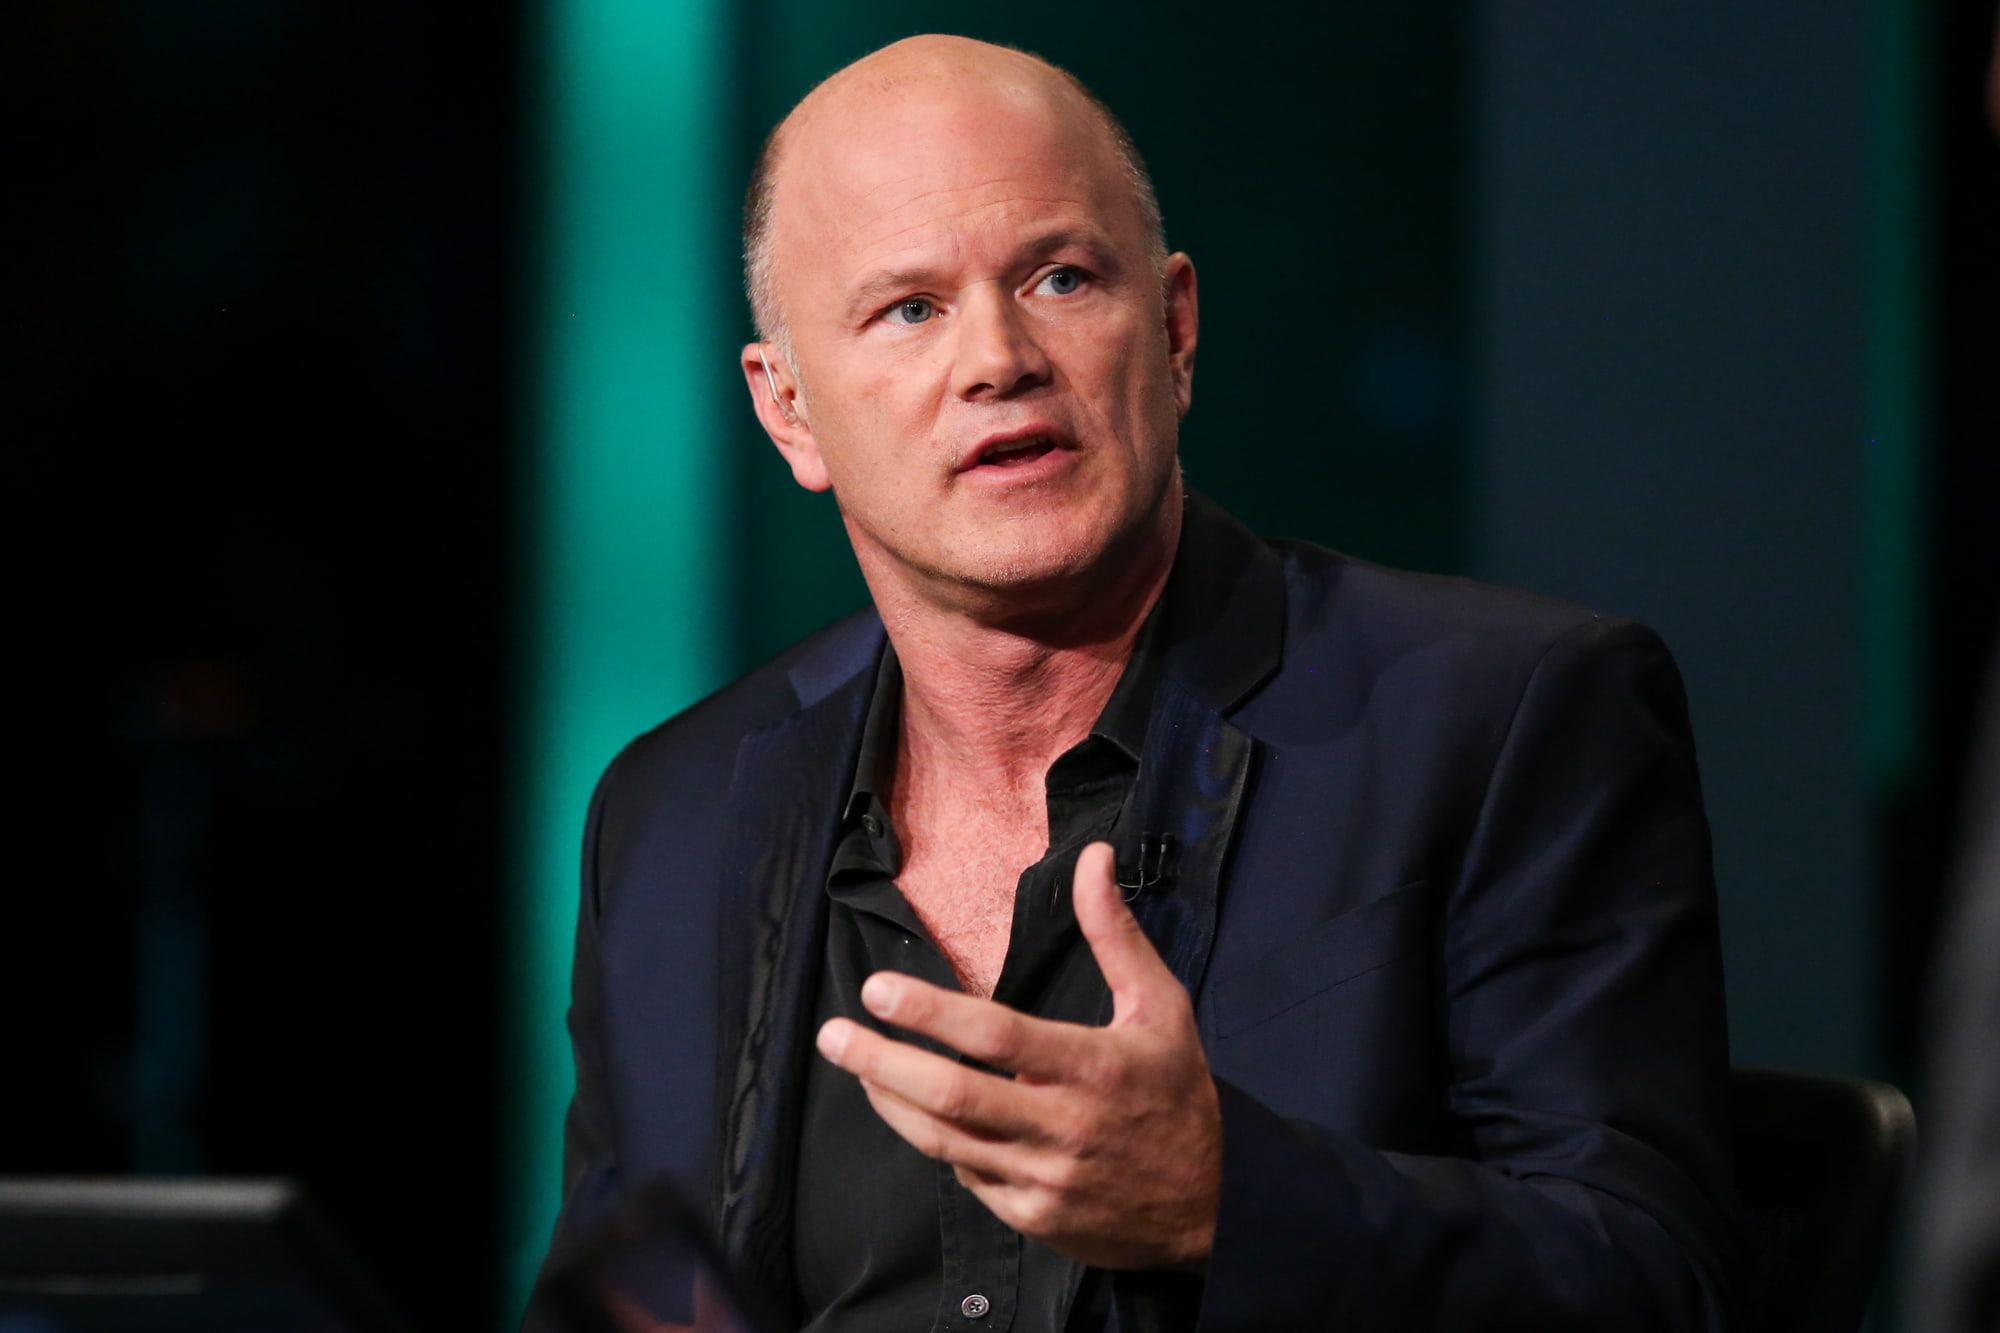 Former hedge fund manager Michael Novogratz says America needs redistribution of wealth